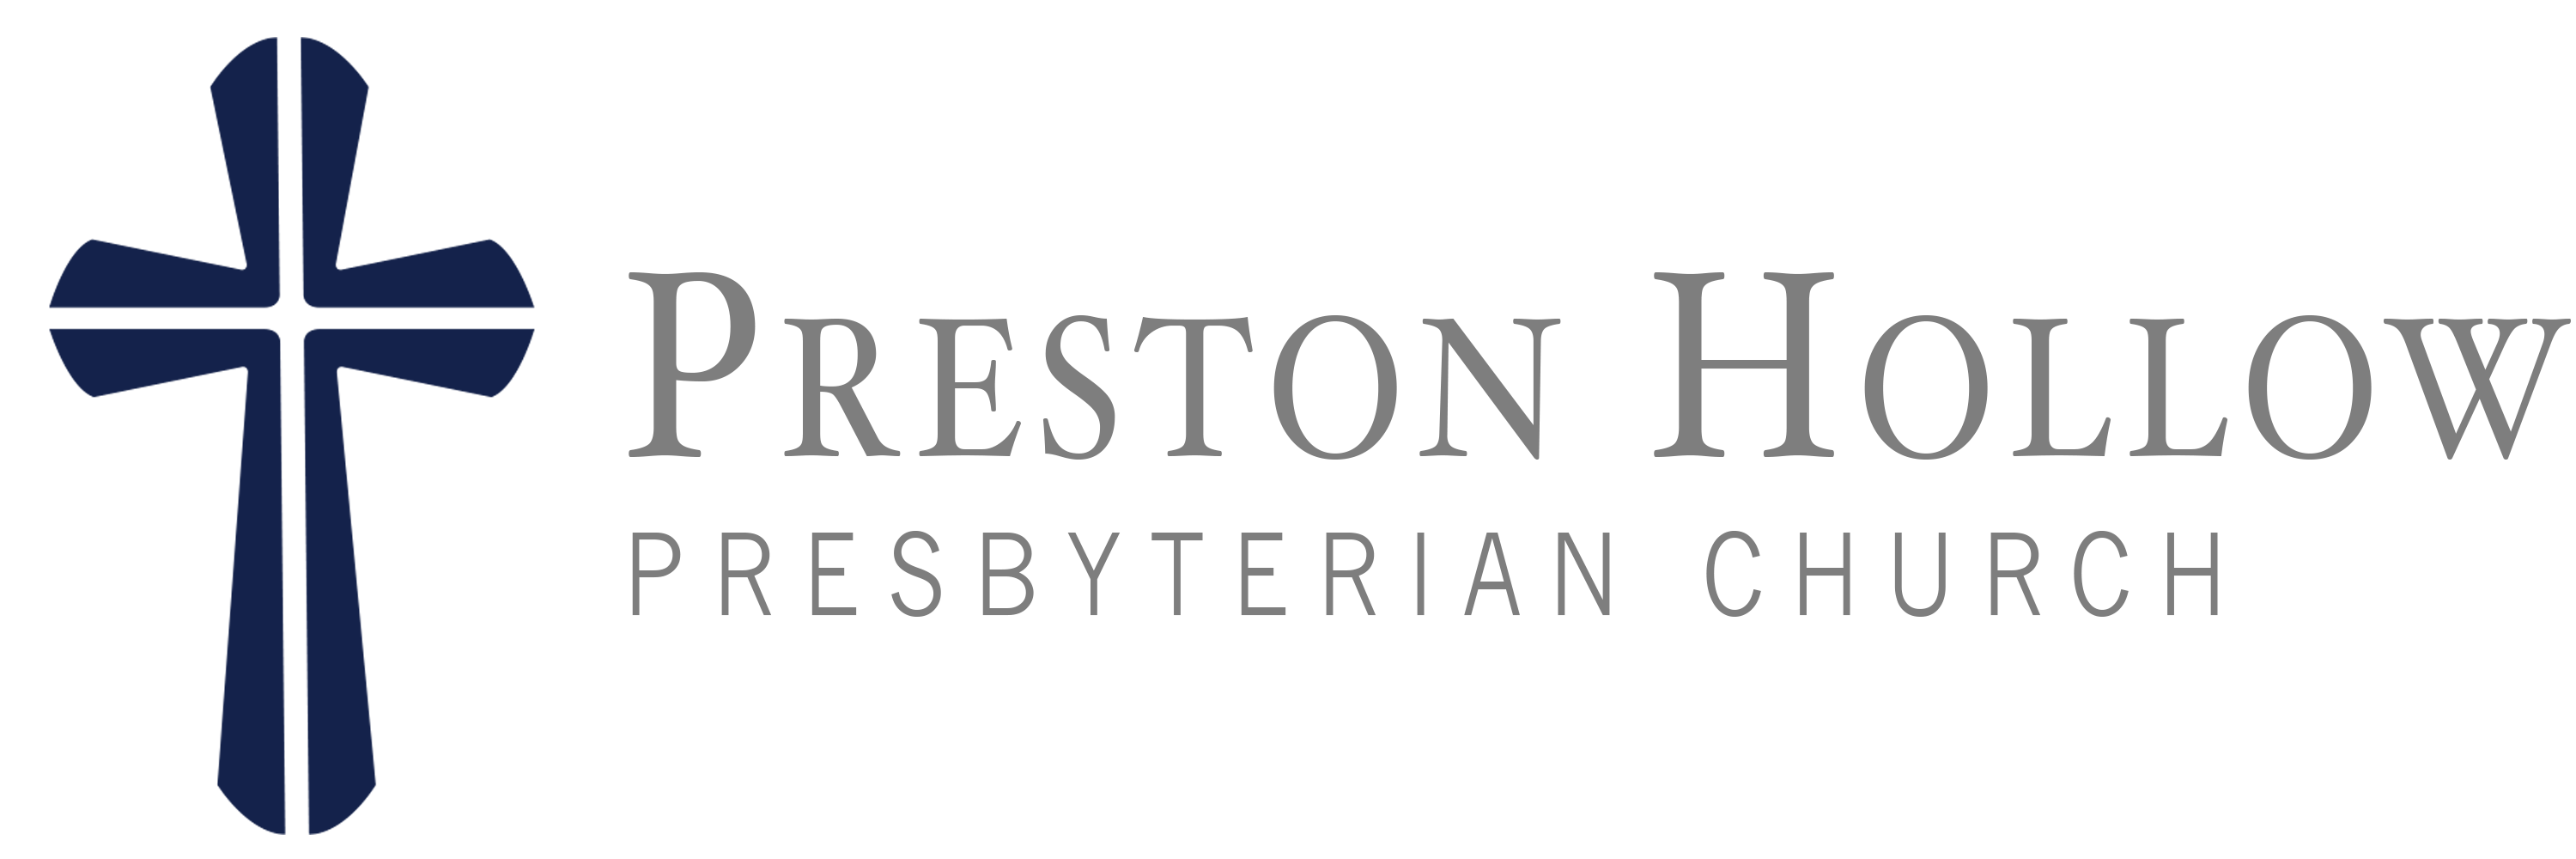 Preston Hollow Presbyterian Church (ARCHIVE)